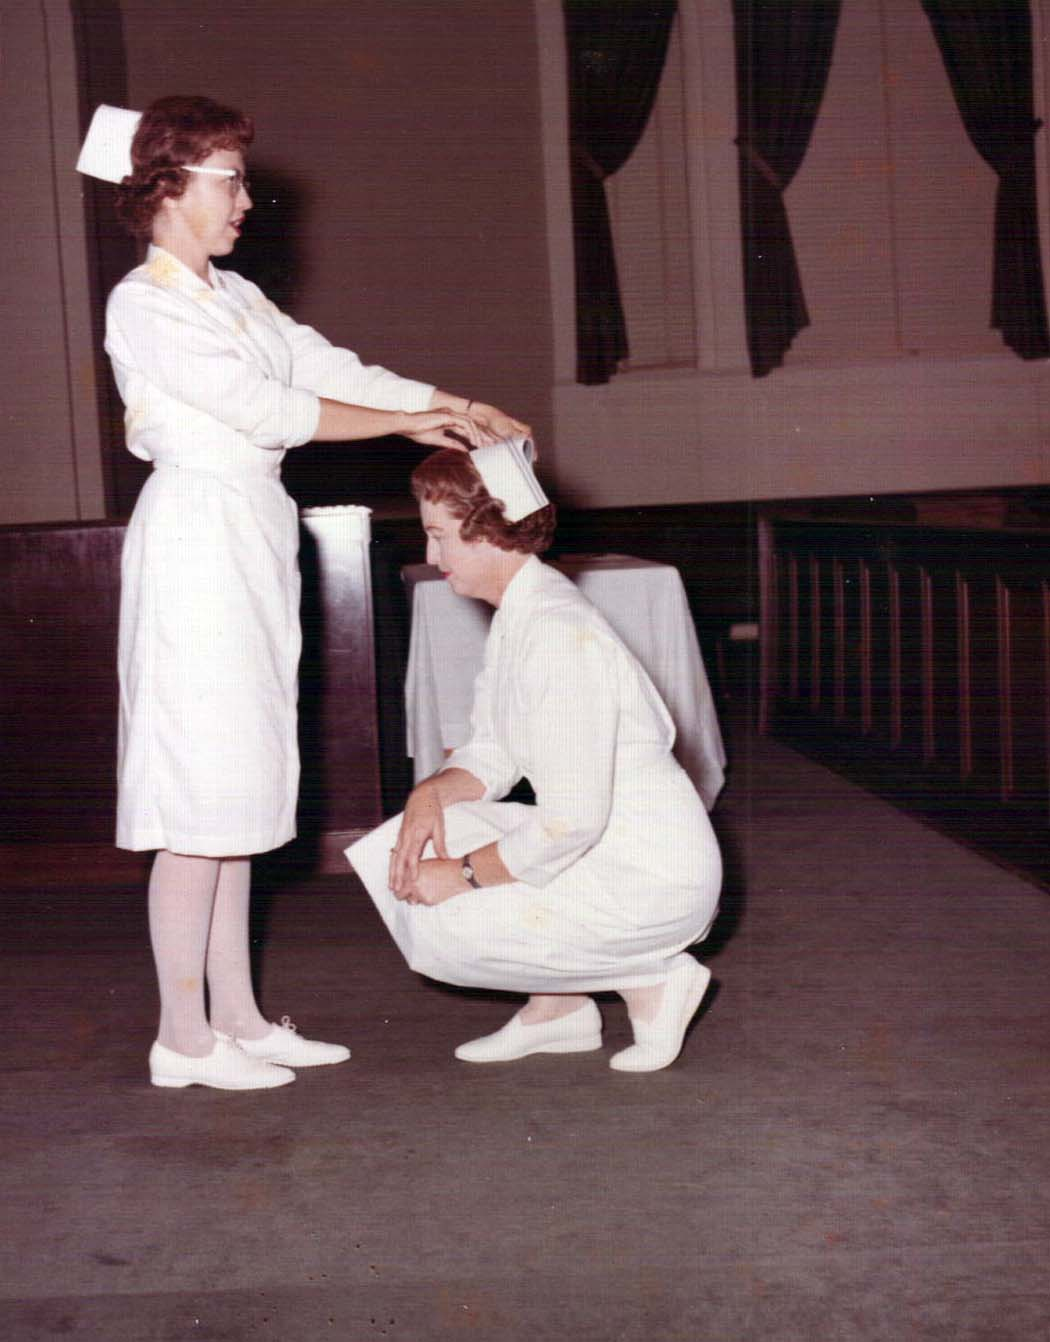 A nurse places nursing cap on head of kneeling Margaret Lanier.